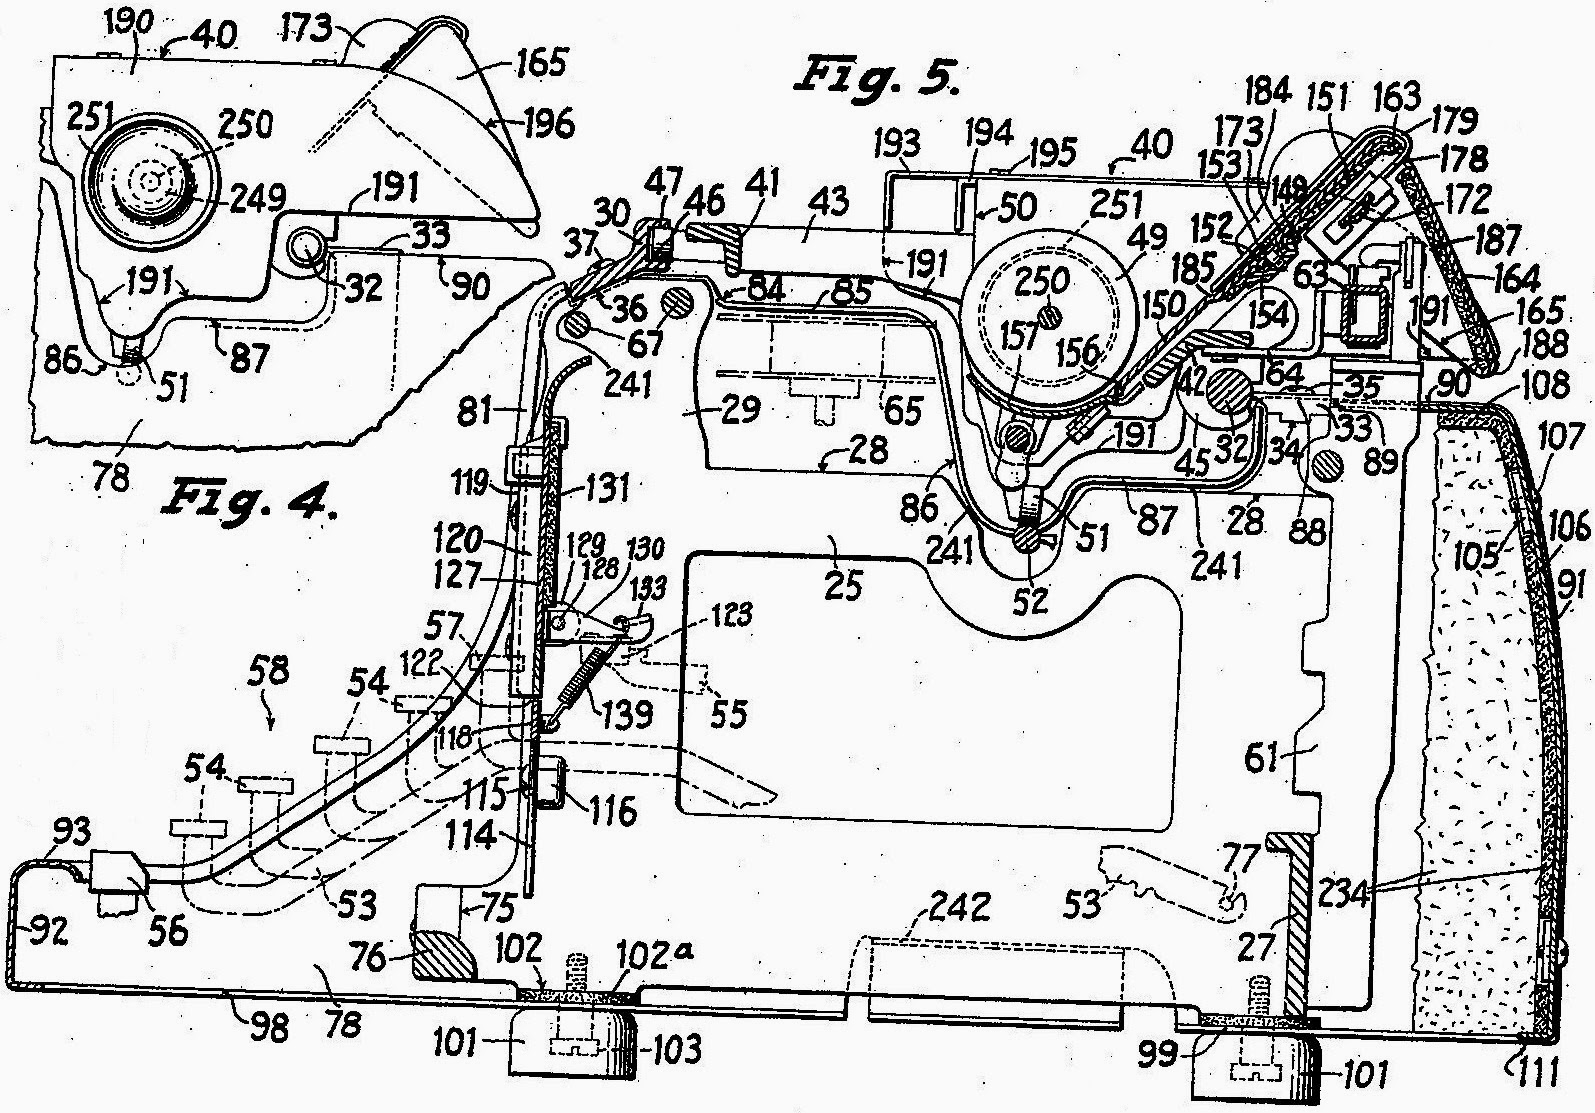 But the basic inner frame for the underwood standard used on the master was designed in march 1919 by another great underwood design engineer